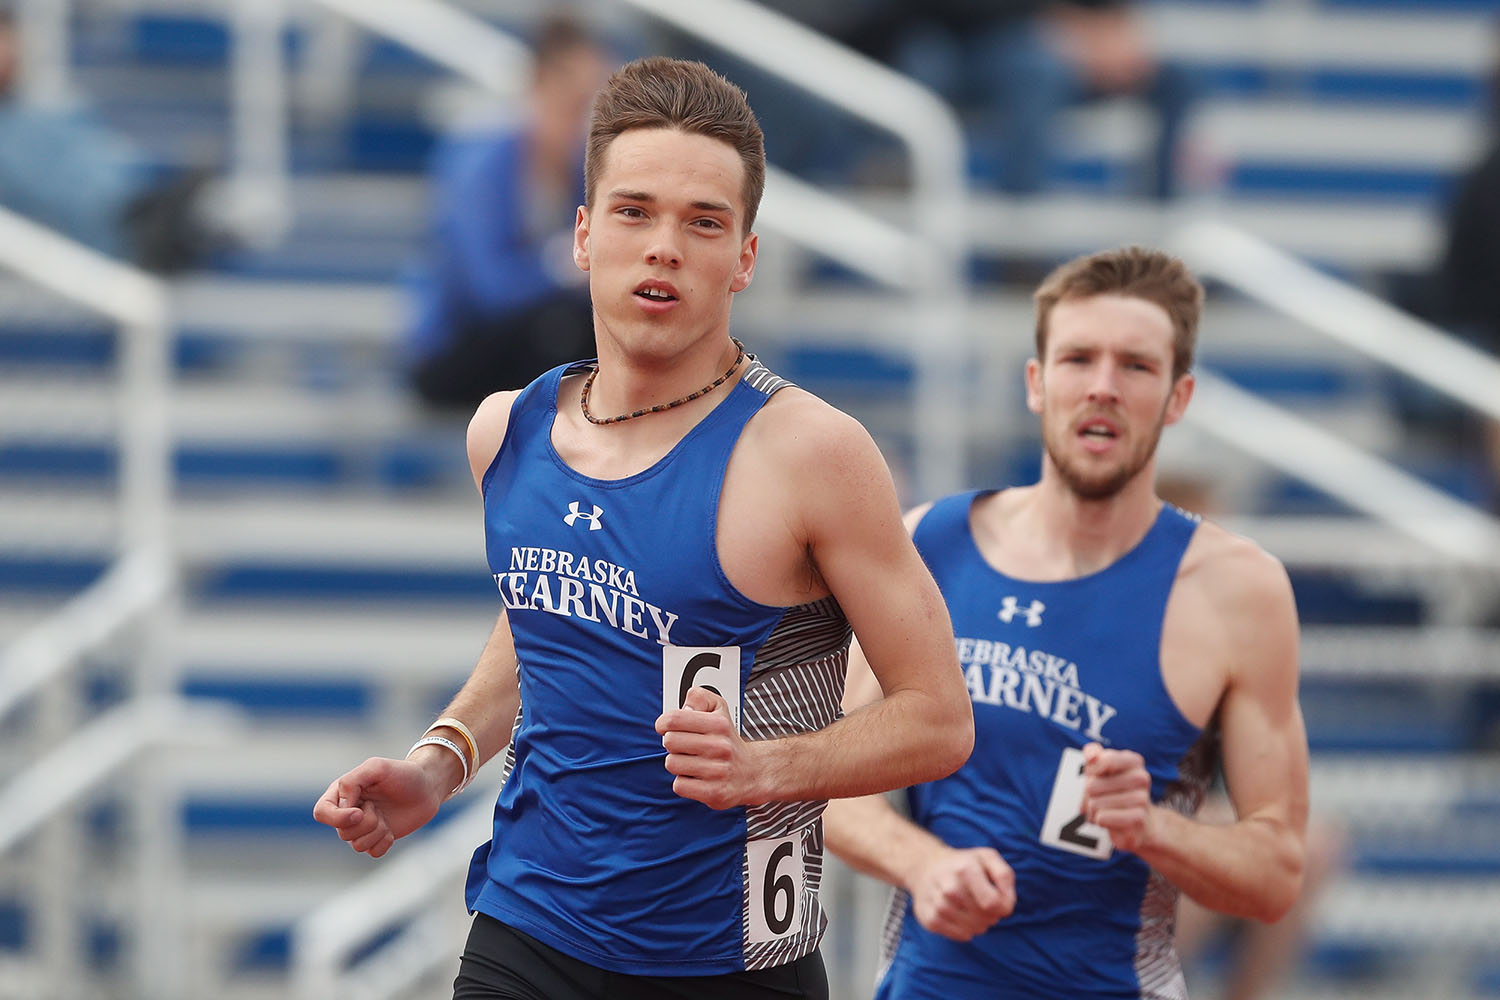 Nate Pierce, left, ranks third in UNK history in the outdoor 1,500-meter run (3:52.65), fifth in the indoor mile (4:10.75) and eighth in the indoor 1,000-meter run (2:31.18). He was also part of the distance medley relay team that set UNK and MIAA Indoor Track and Field Championships records with a time of 9:55.17. (Photo by Corbey R. Dorsey, UNK Communications)